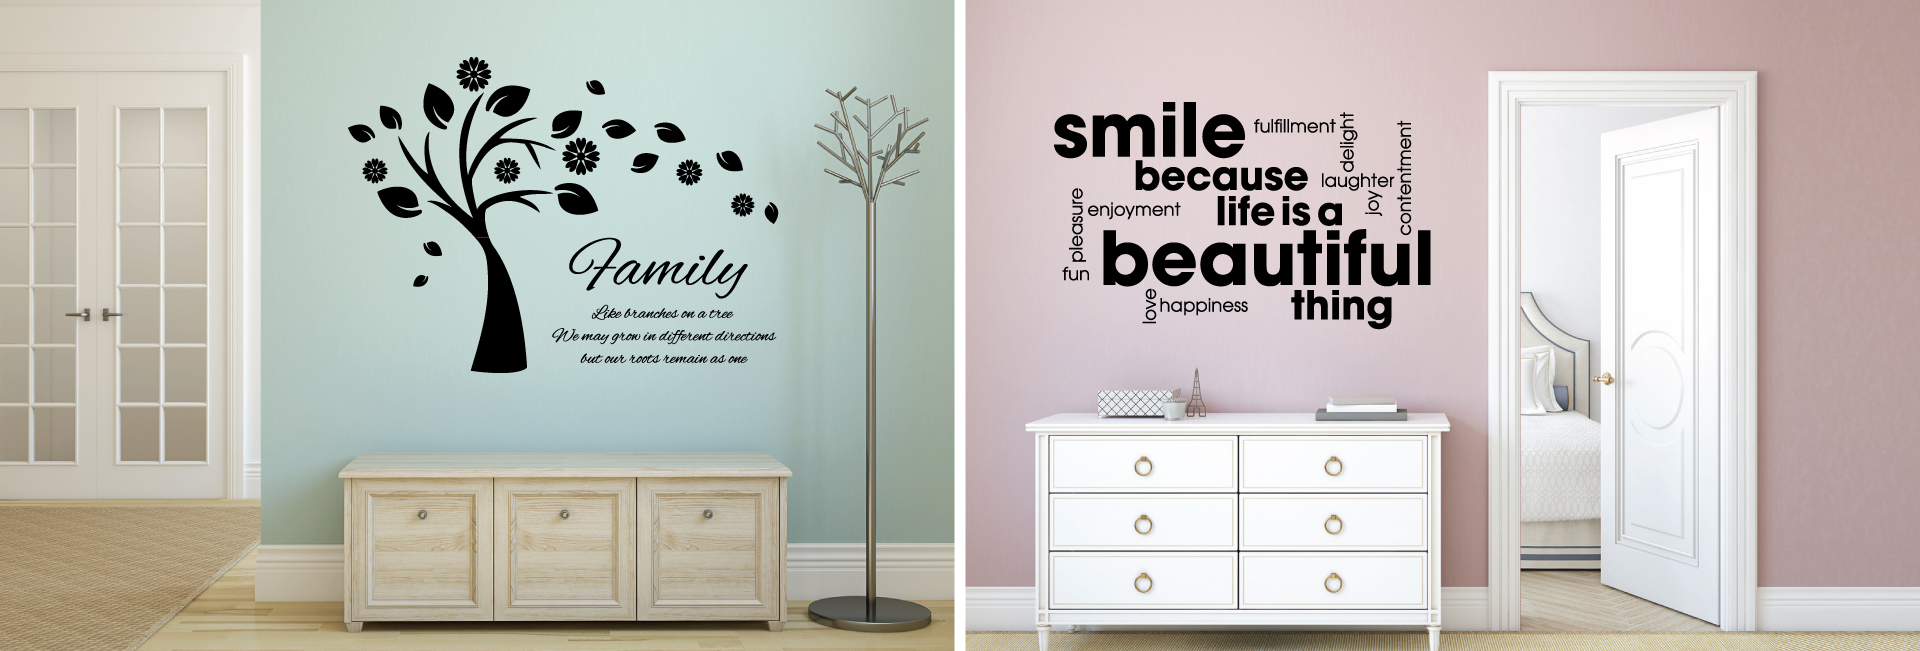 wall genie wall stickers tile stickers wall art slider image 3 love